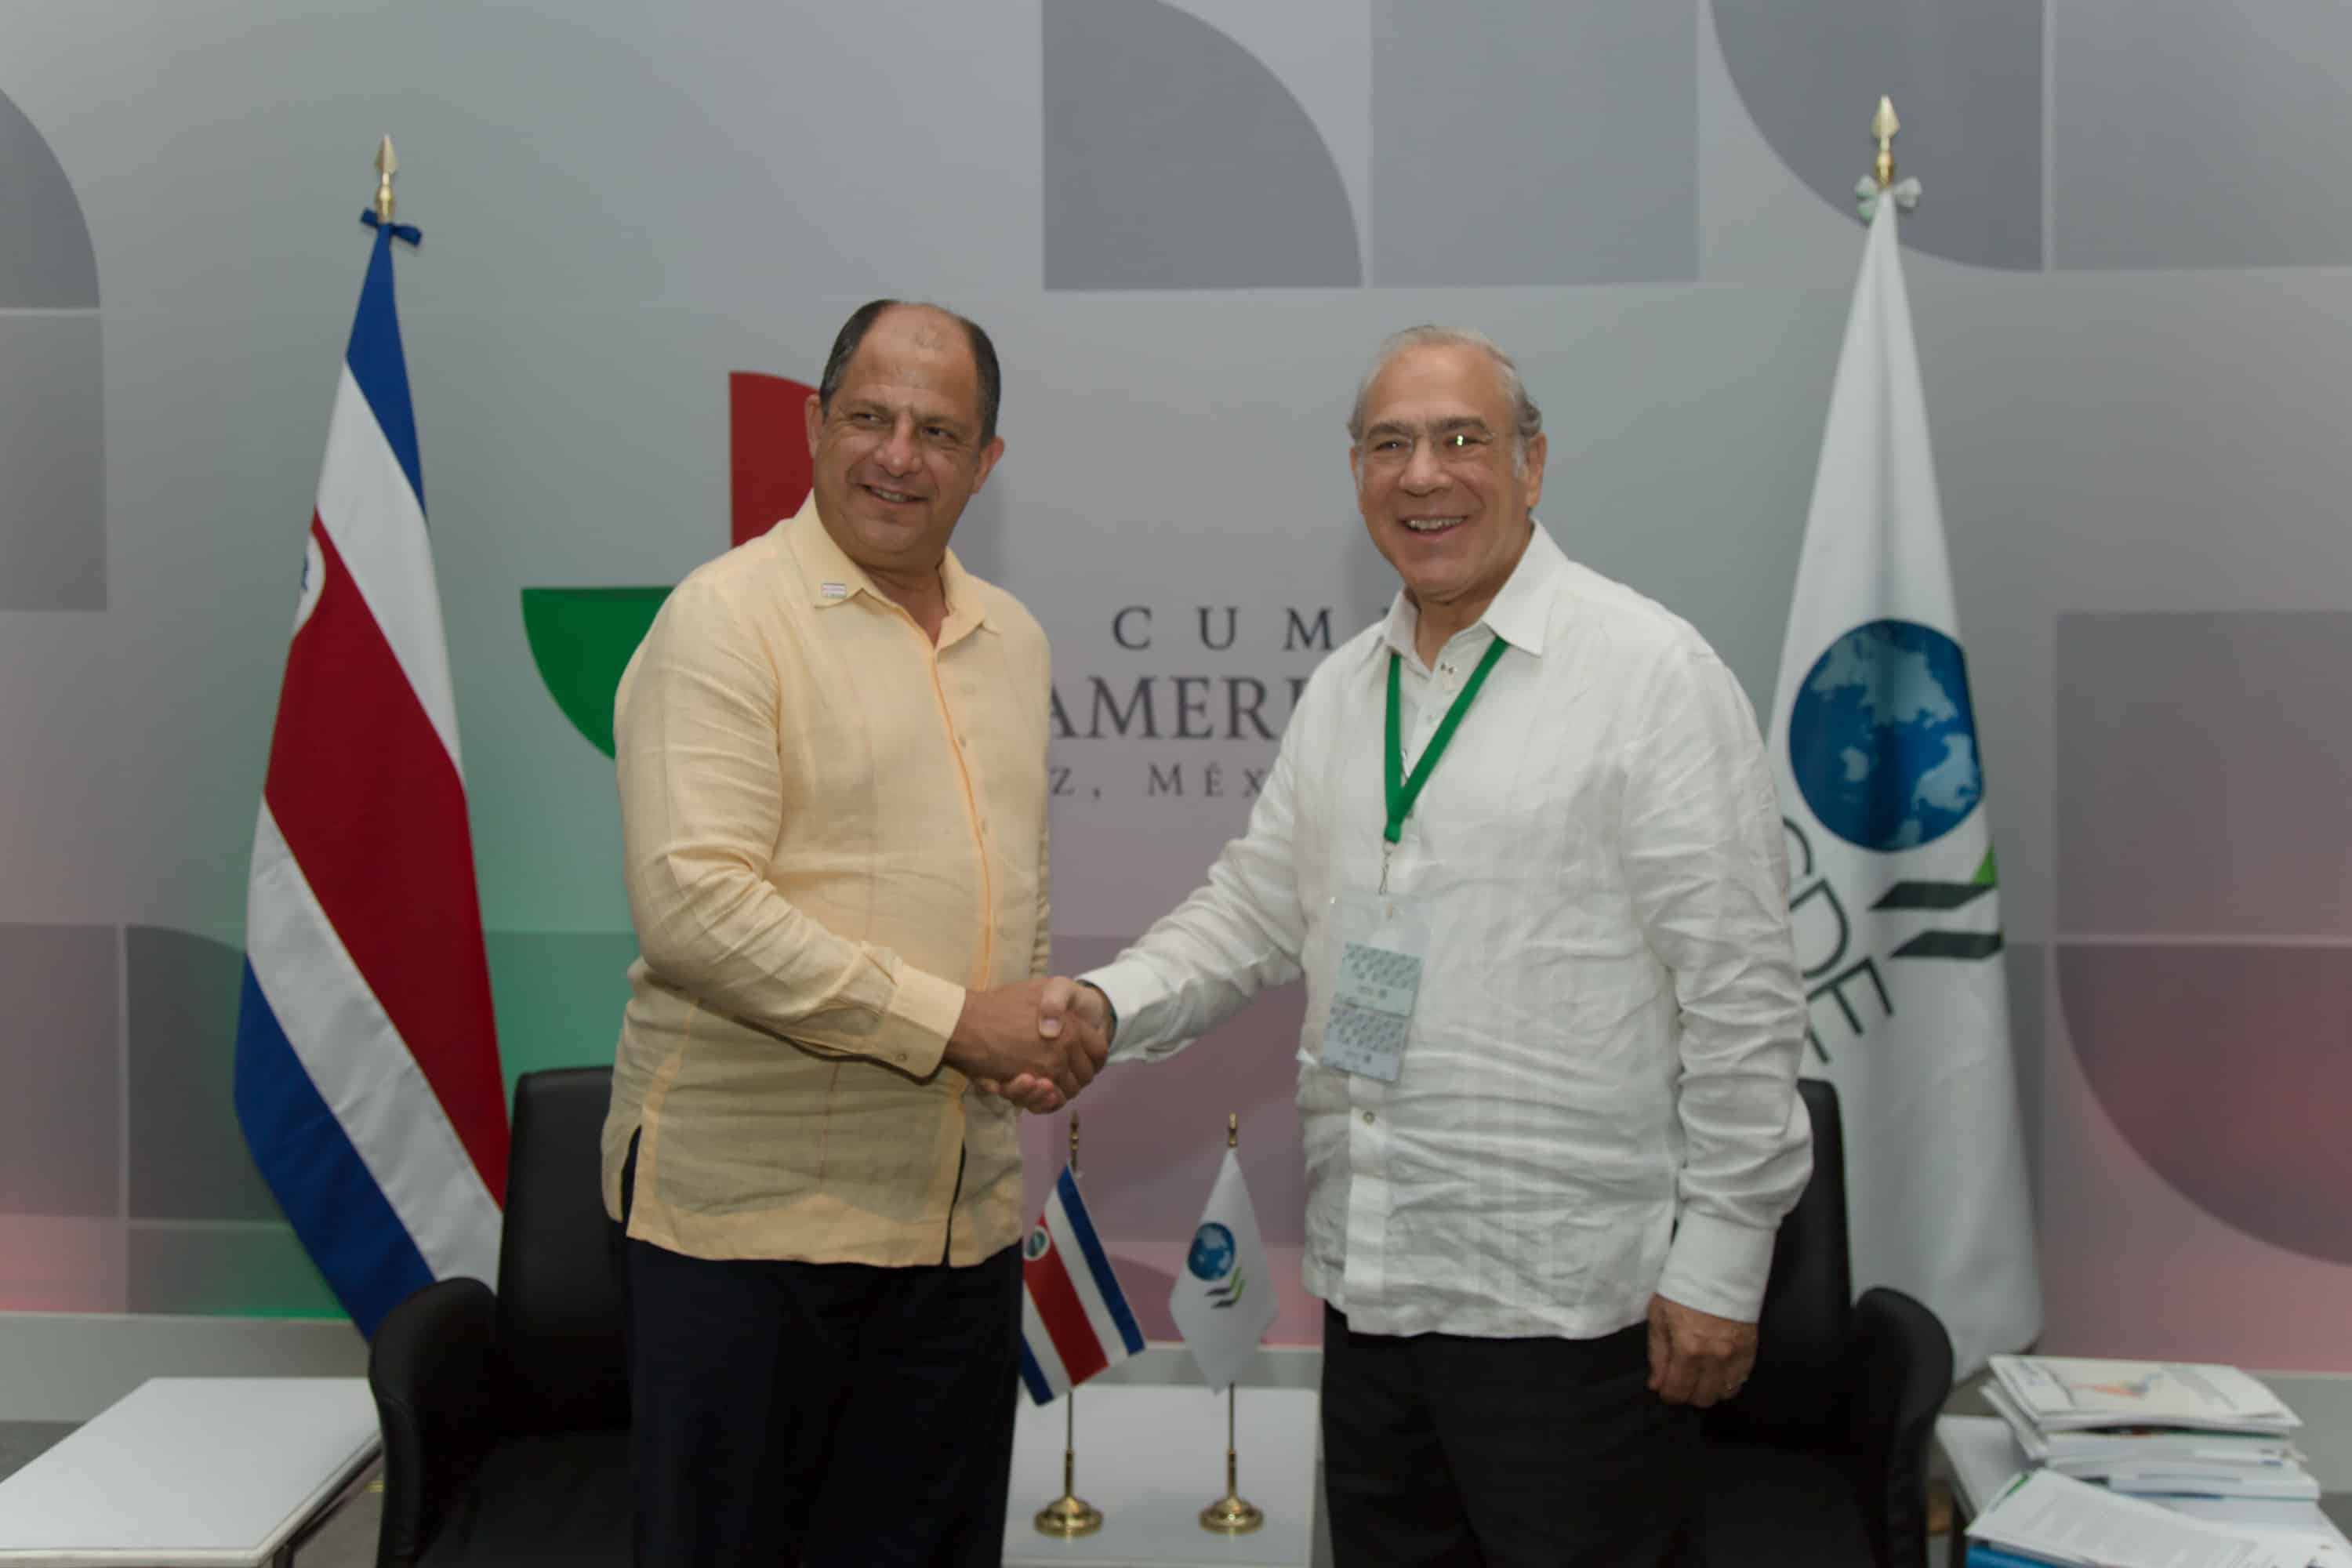 President Luis Guillermo Solís shakes hands with OECD Secretary-General Angel Gurría during the Ibero-American Summit in Mexico in December 2014.